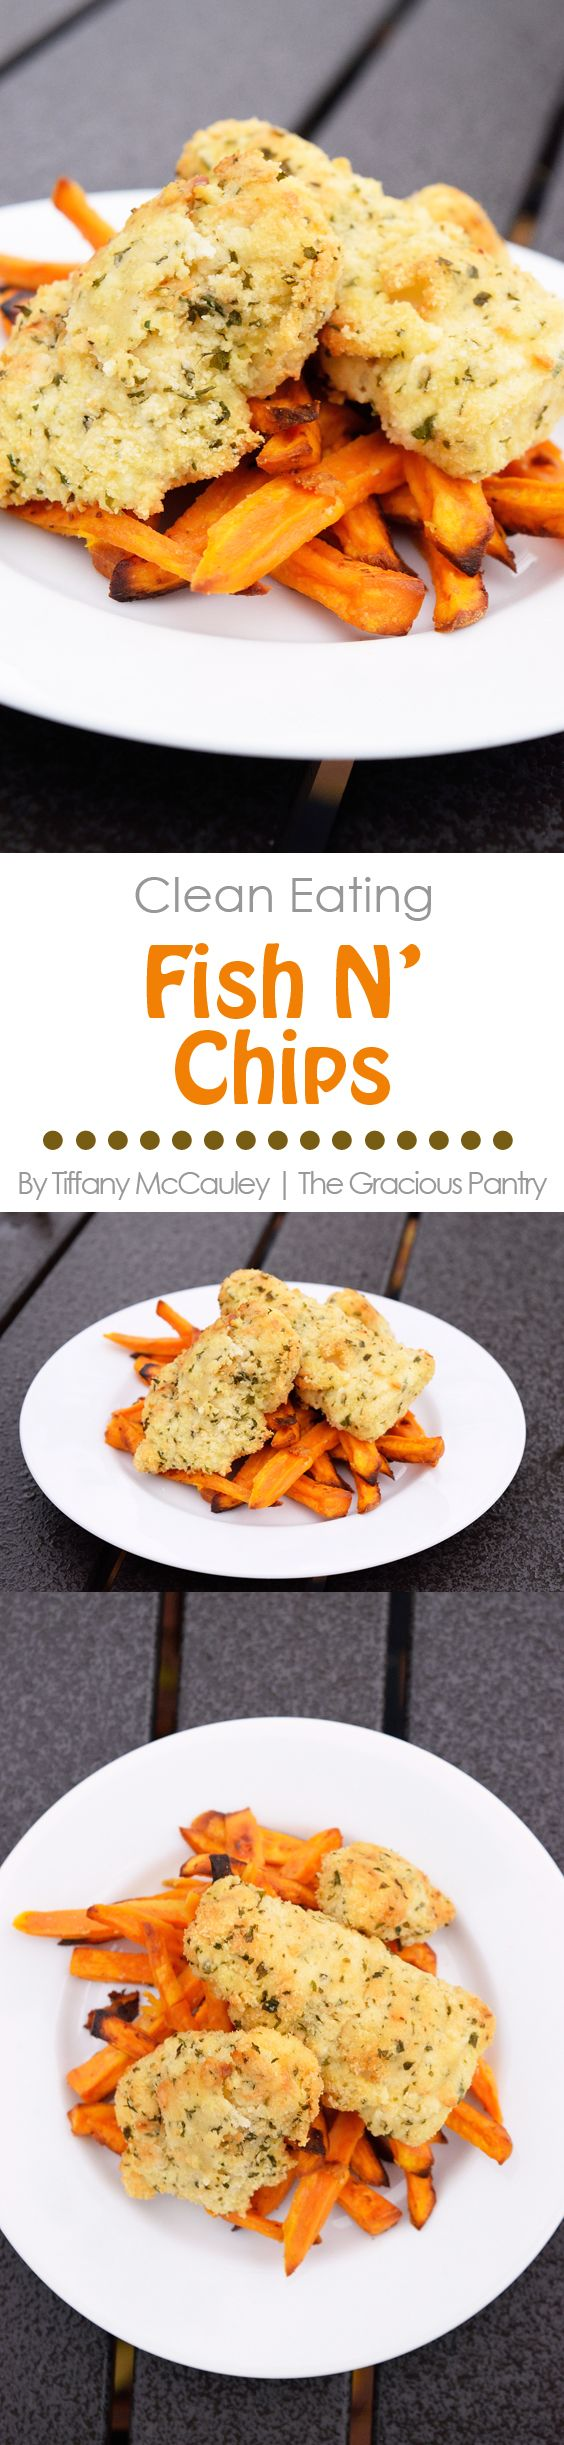 Clean Eating Recipes | Fish N' Chips Recipe | Fish And Chips Recipe | Healthy Dinner ~ https://www.thegraciouspantry.com